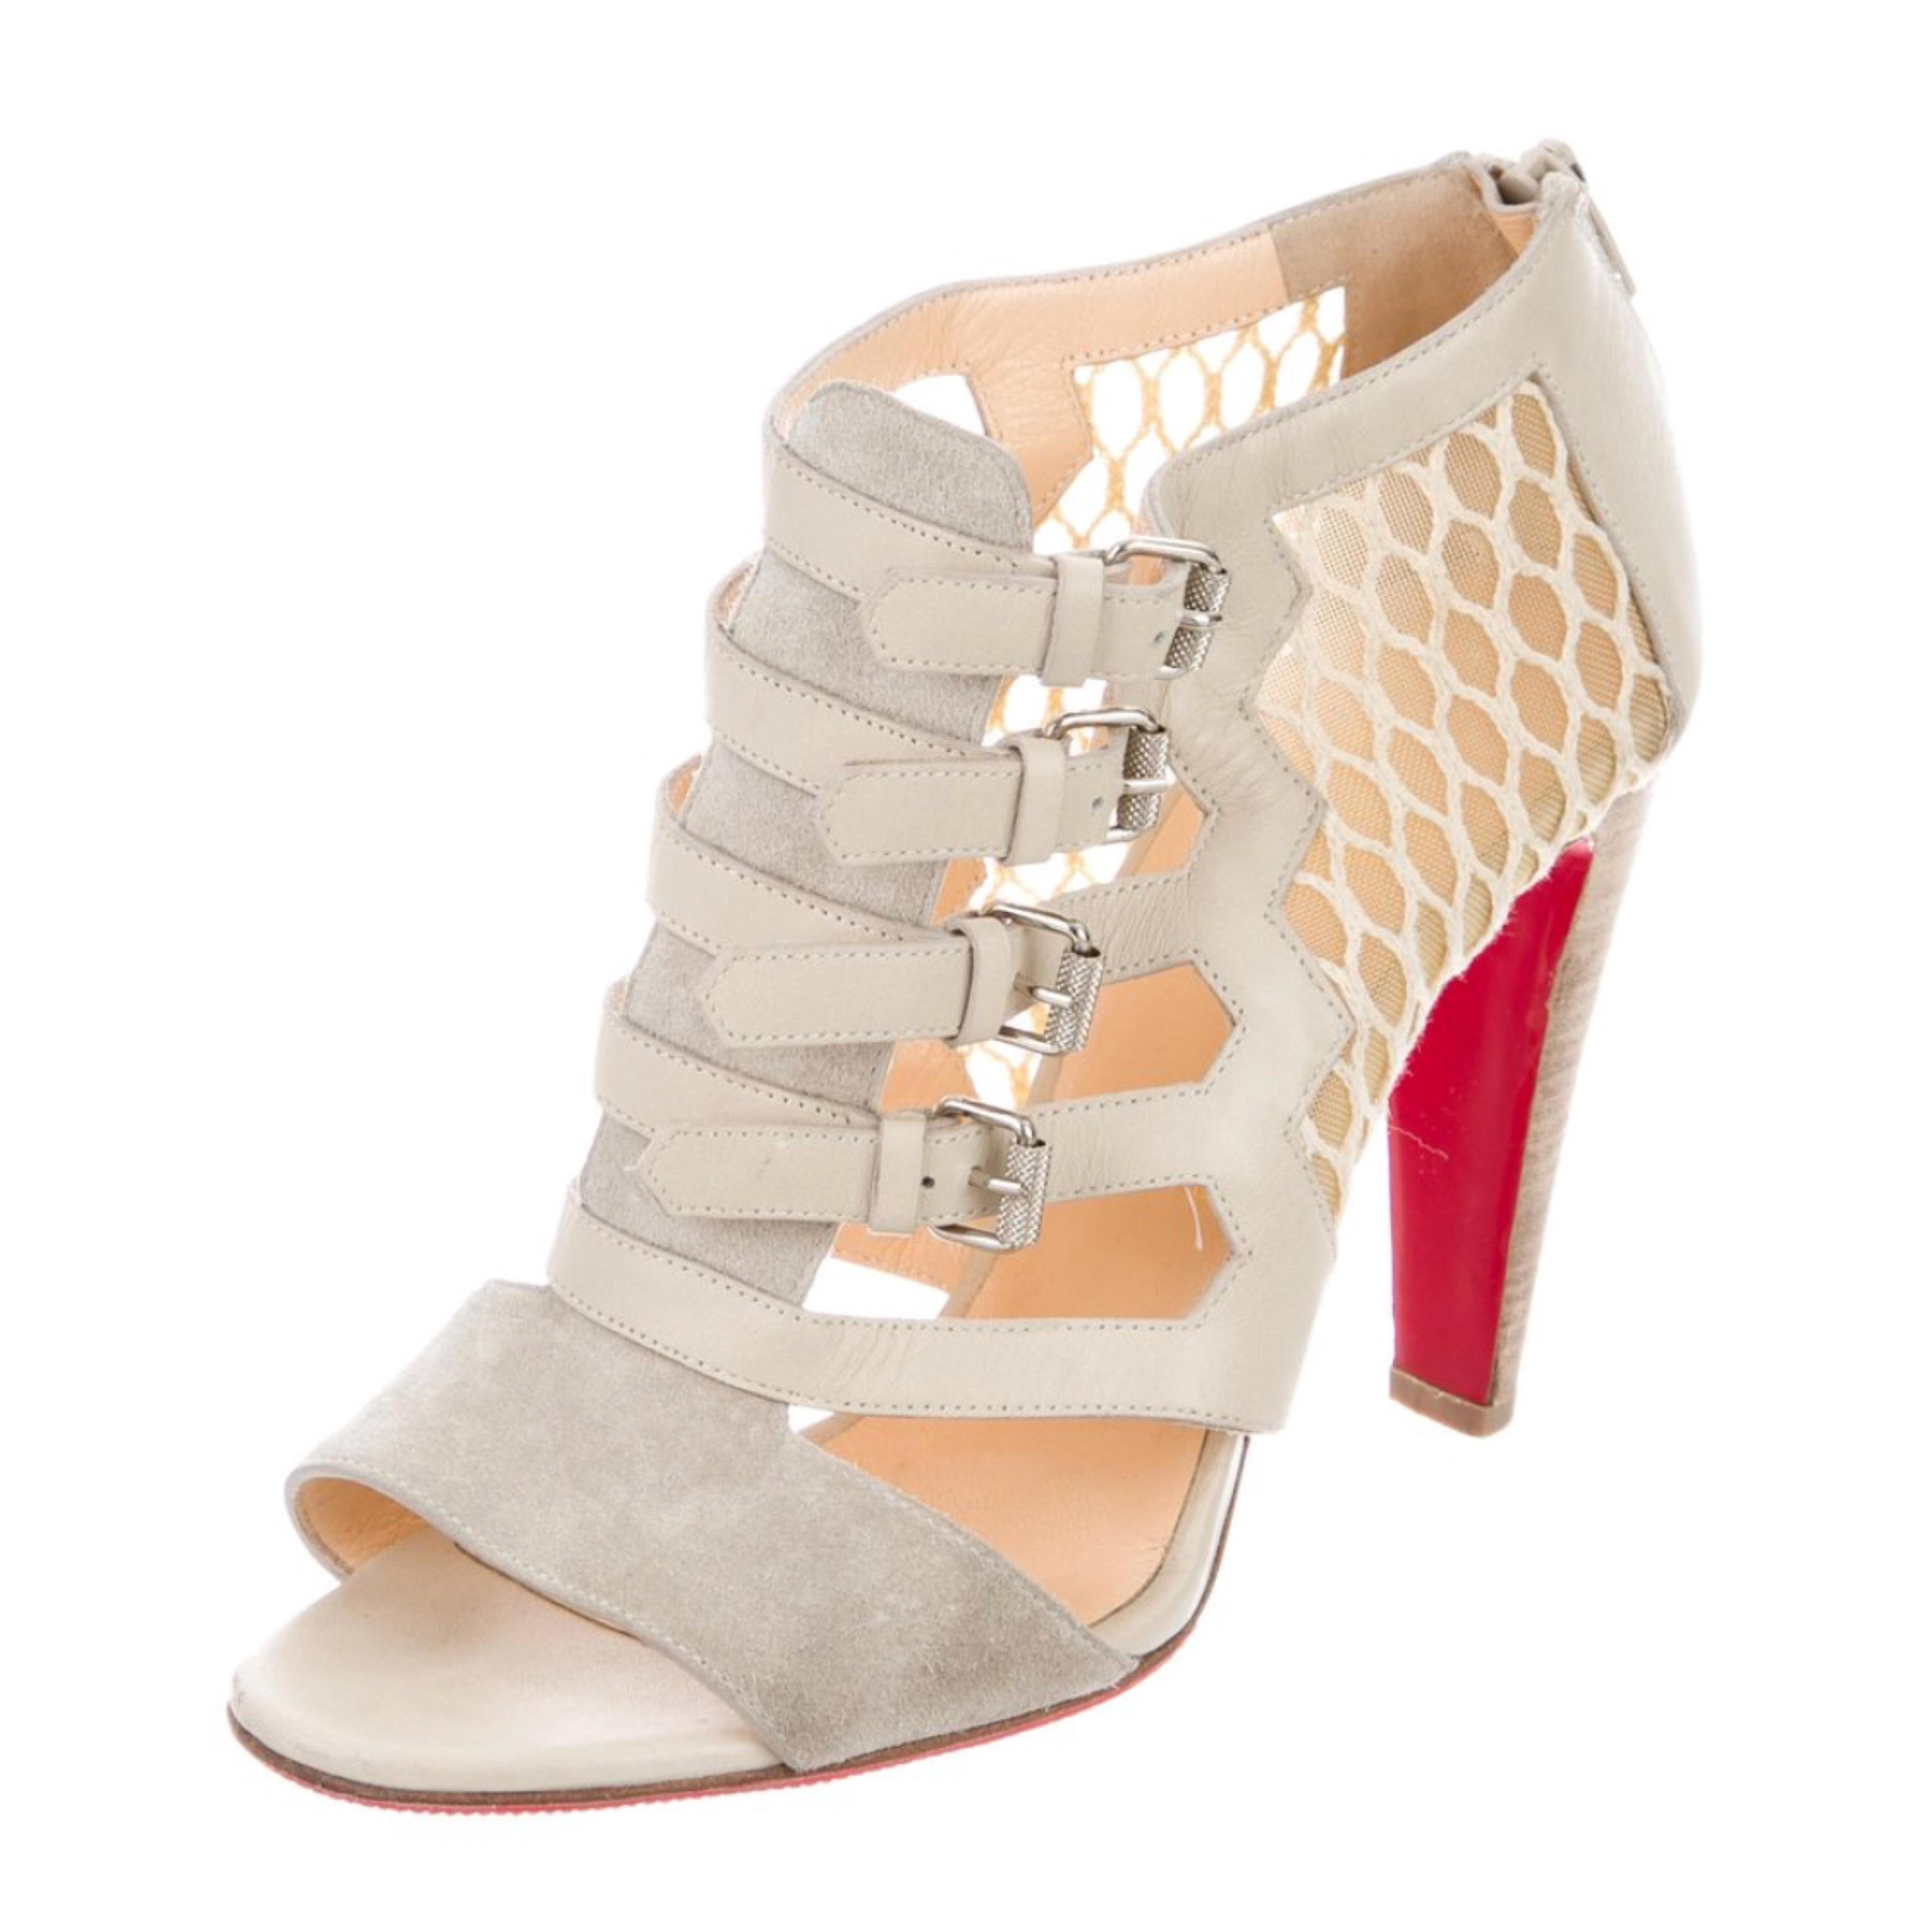 602749febe85a Christian Louboutin Grey Cage Sandals Pumps Size EU 39 (Approx. (Approx.  (Approx. US 9) Regular (M